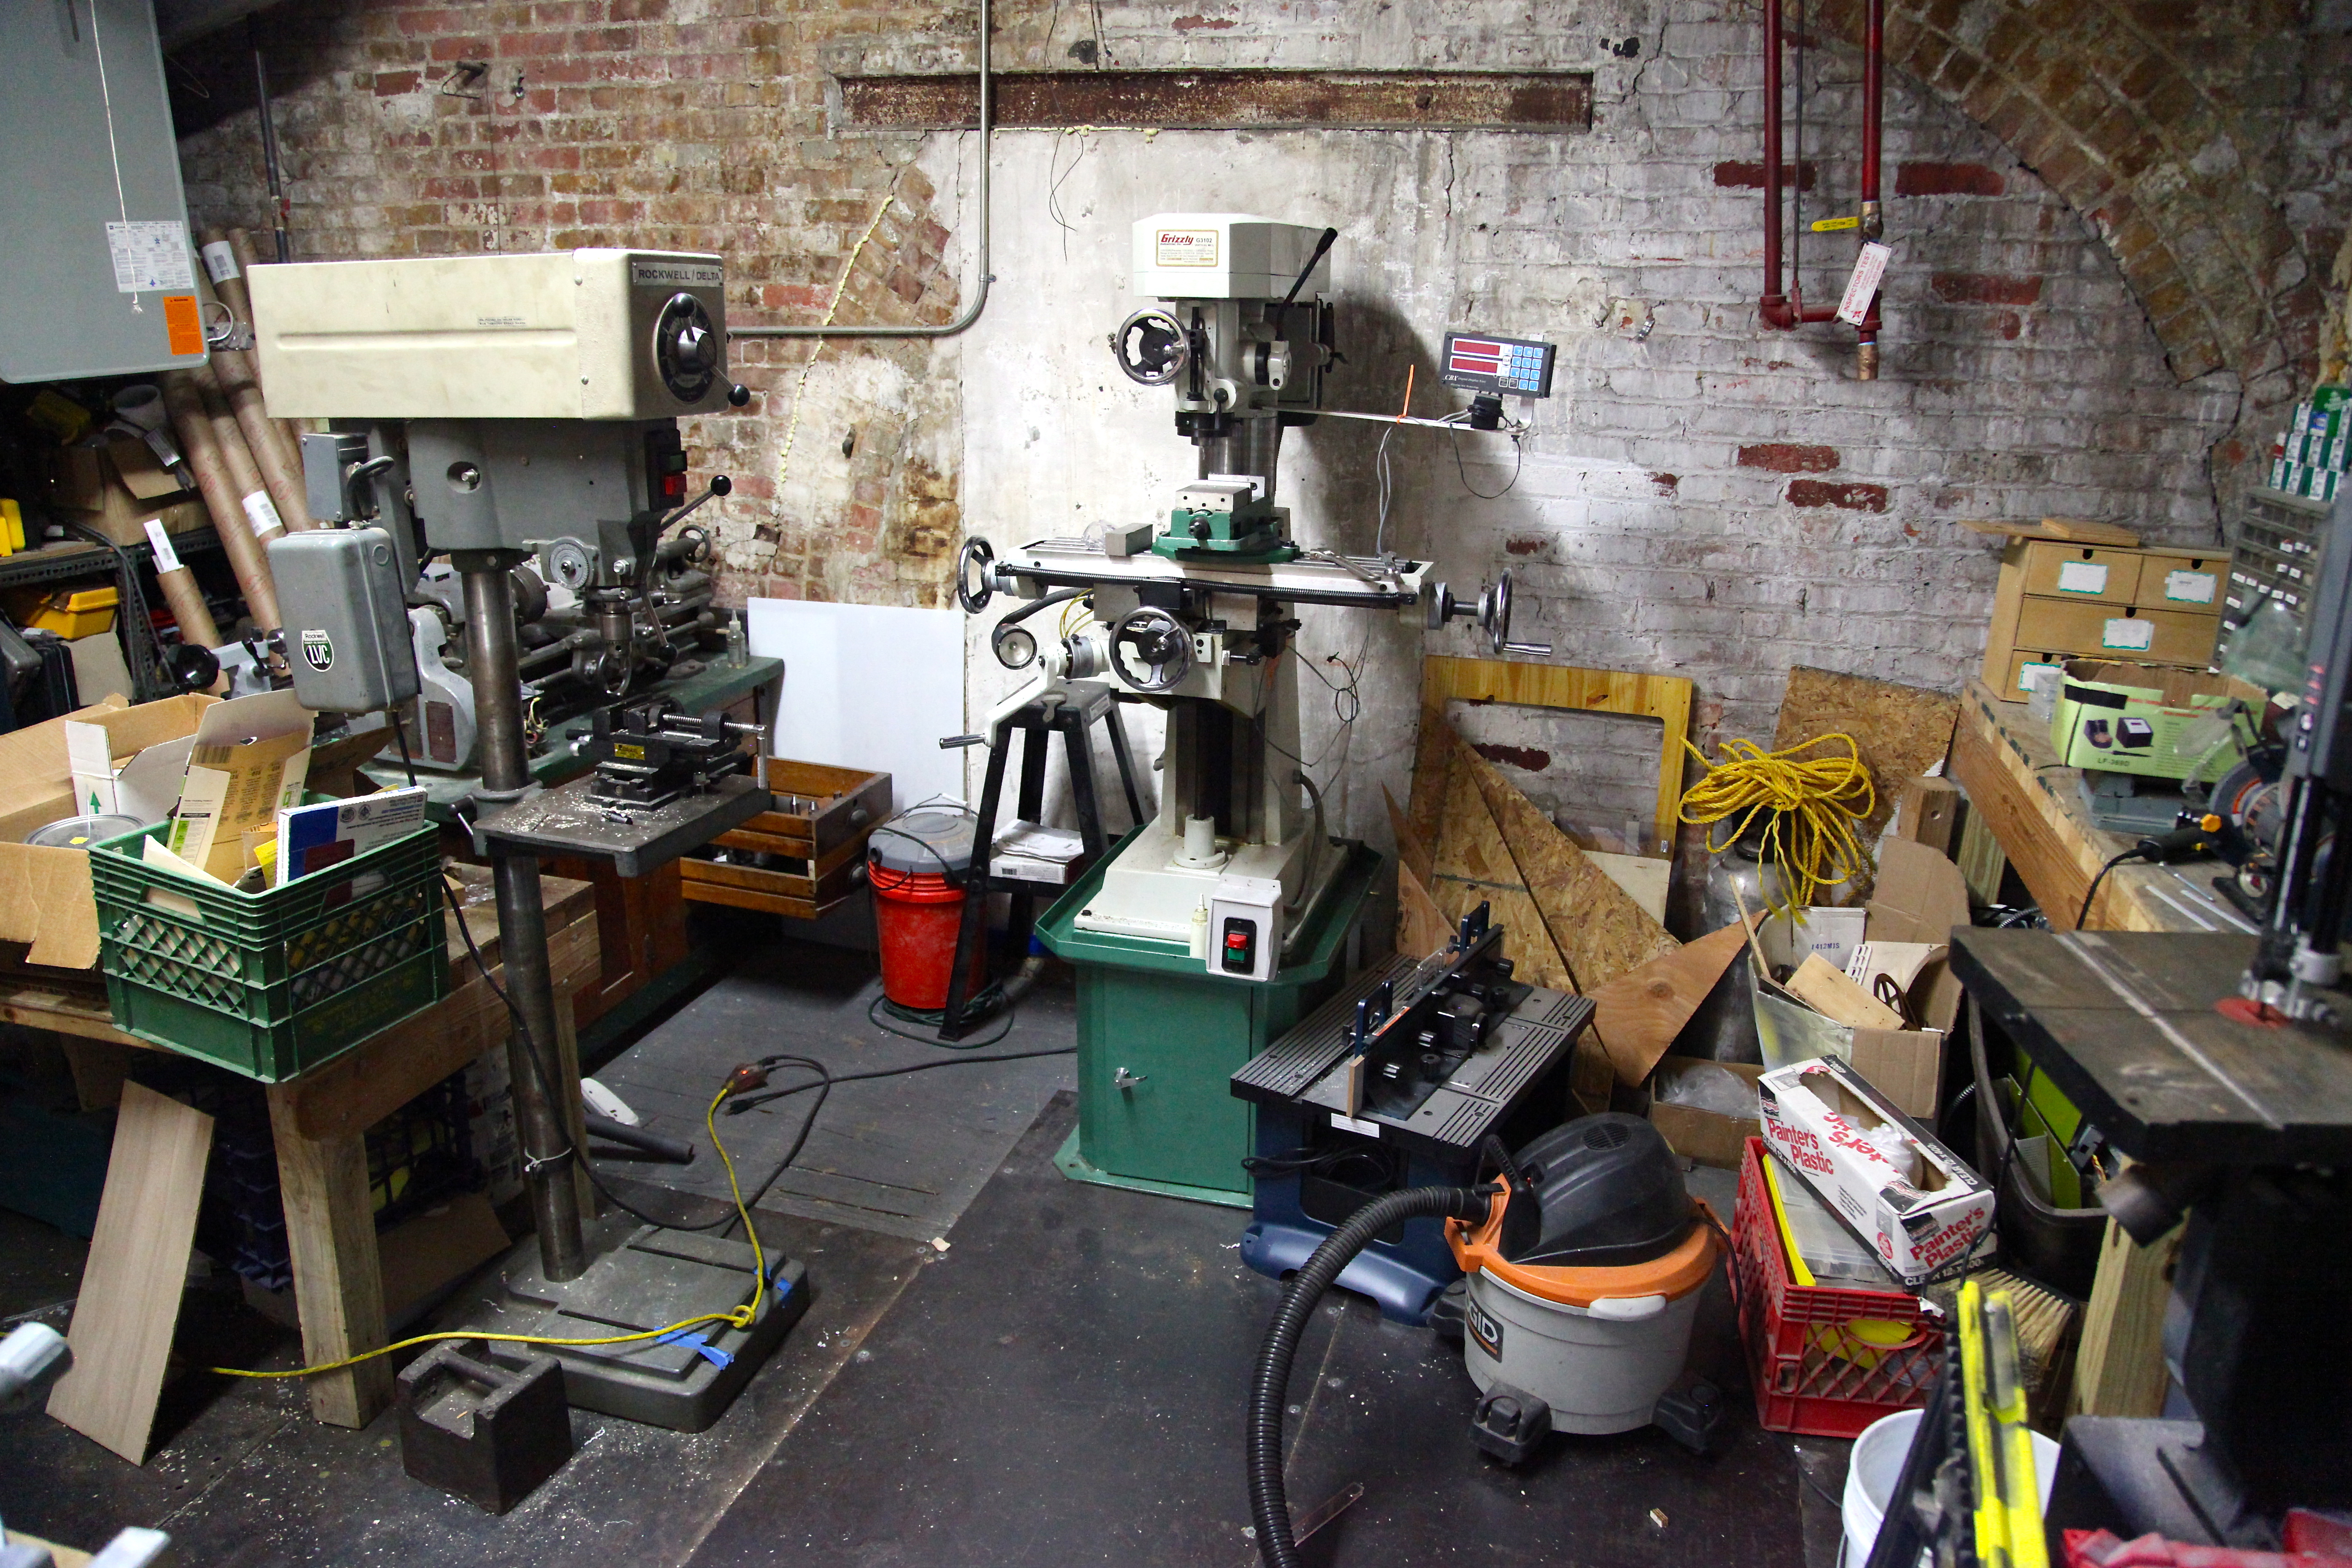 The NYC Resistor woodshop. Photo by Signe Brewster.